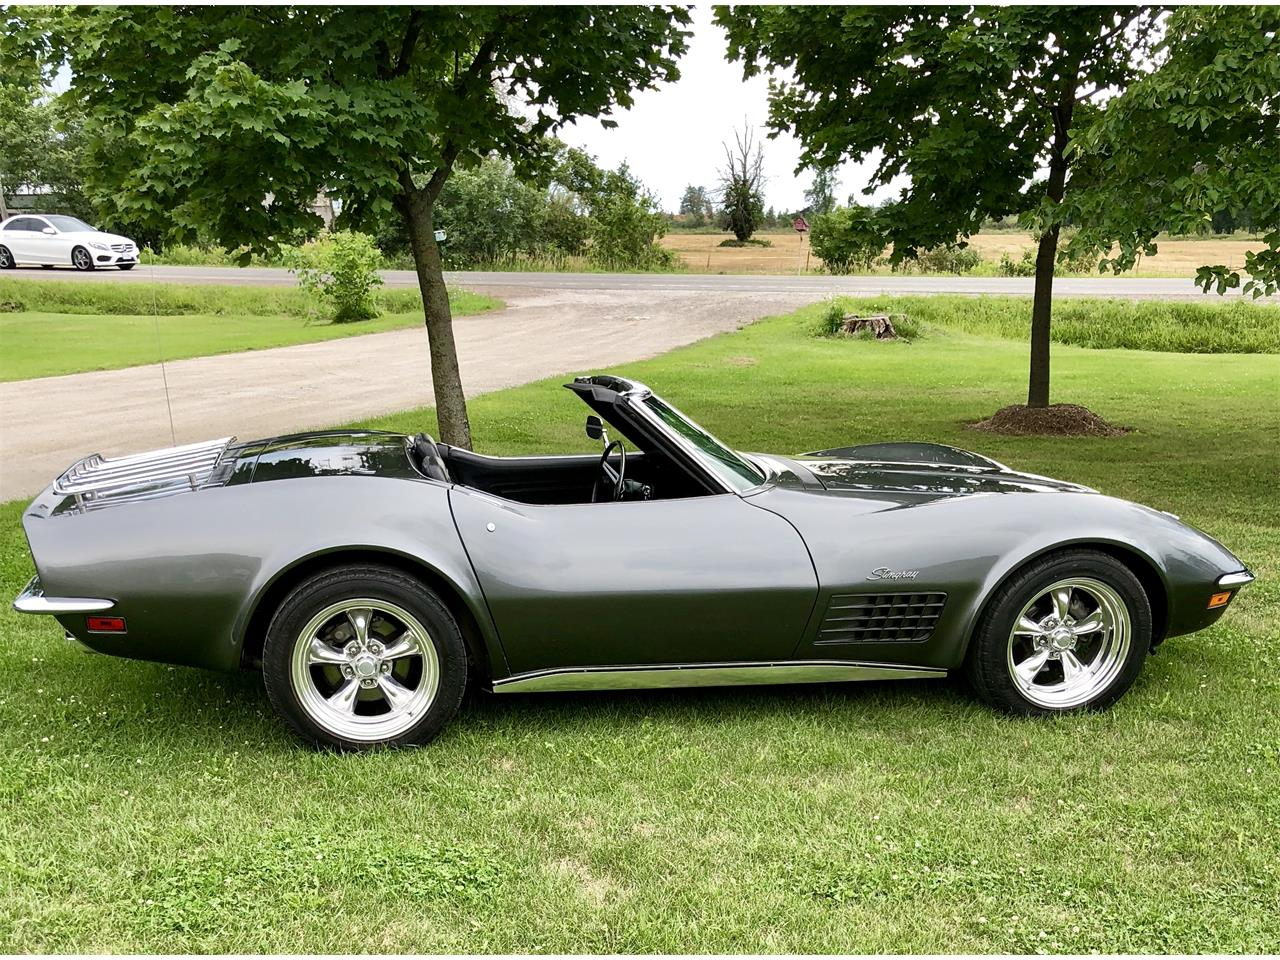 Large Picture of 1970 Corvette located in Ontario - $40,000.00 Offered by a Private Seller - OEDX